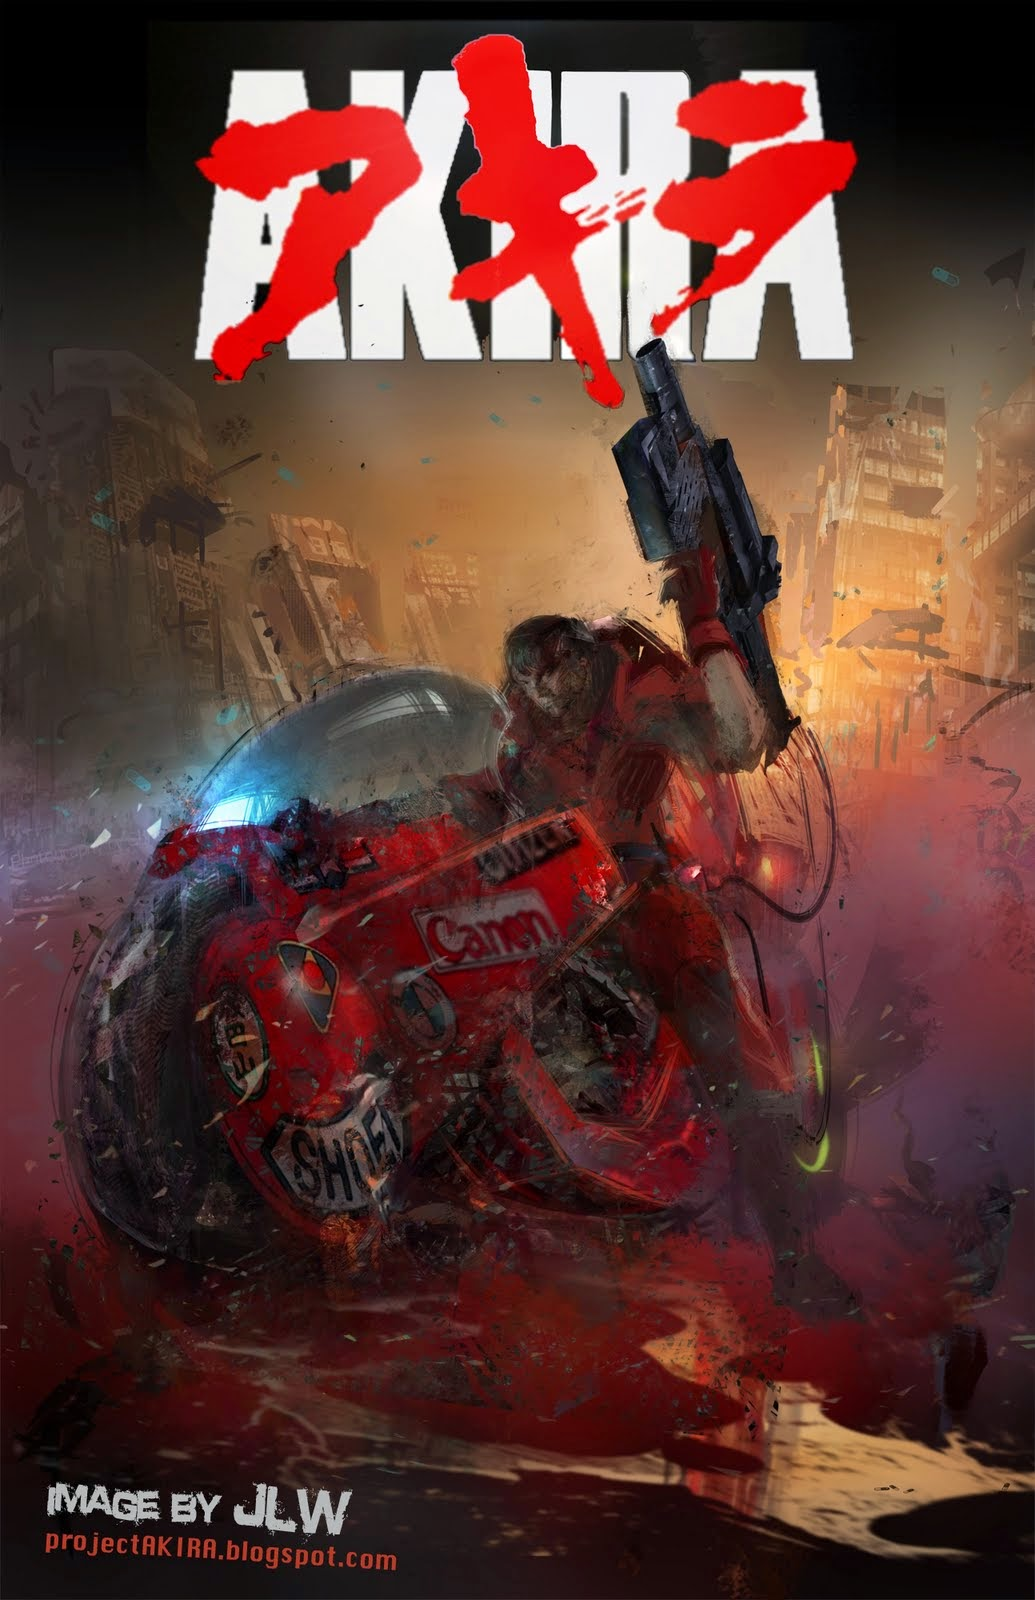 The Akira Project